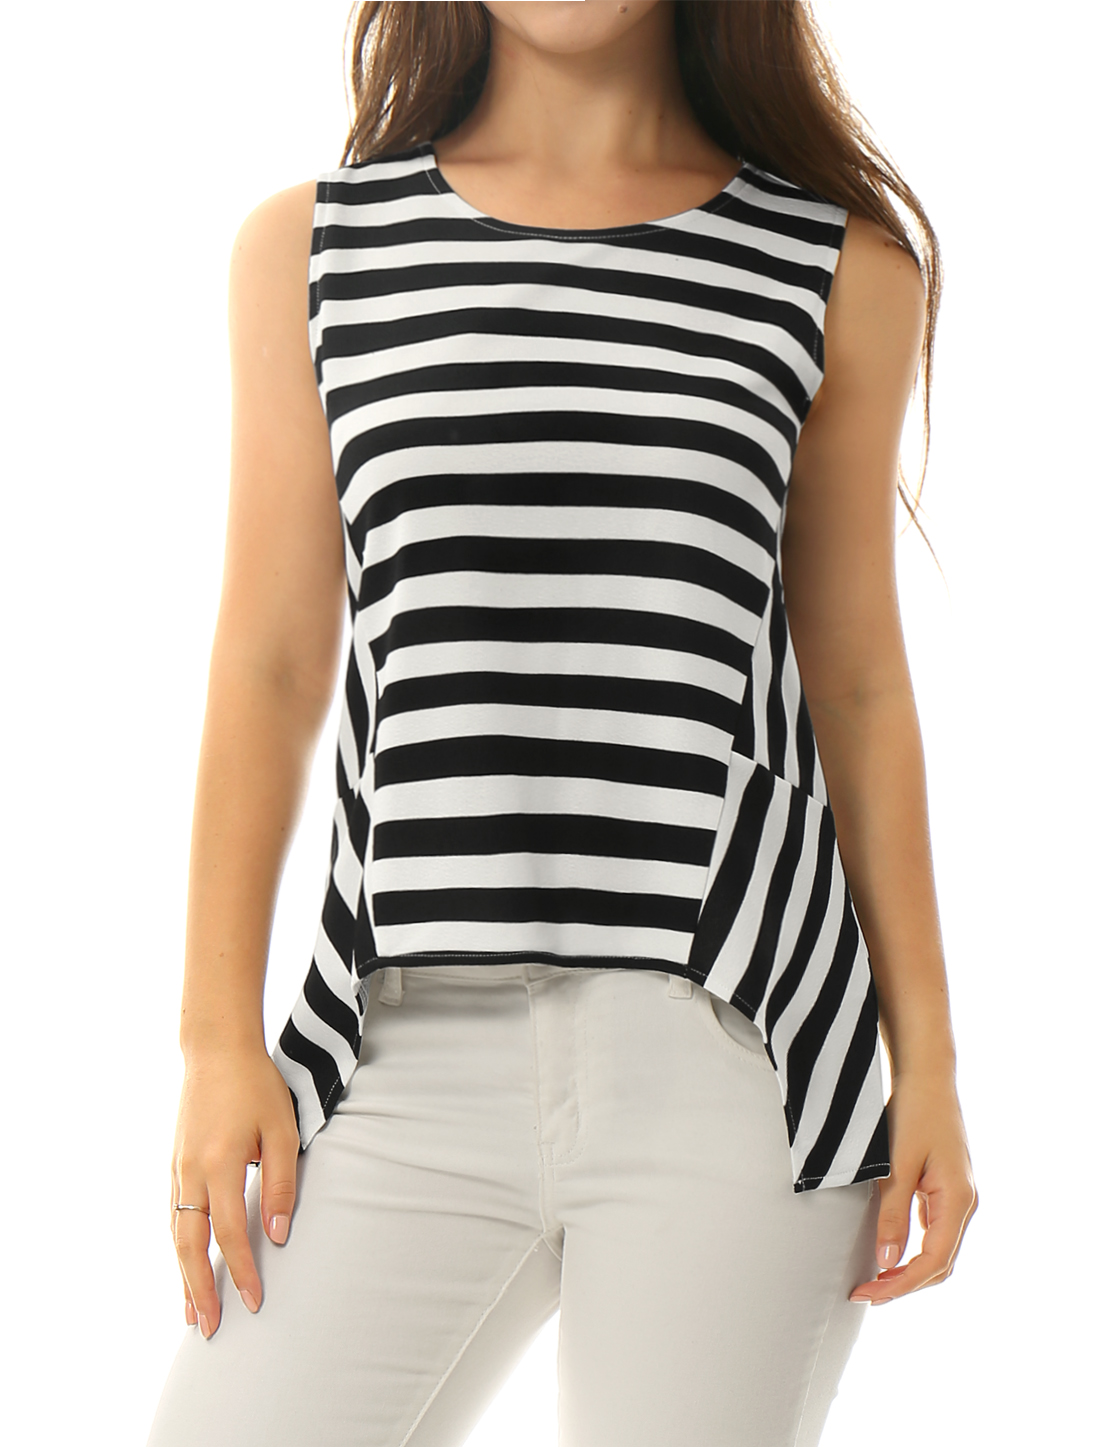 Women Stripes Asymmetric Hem Round Neck Tank Top White Black XL